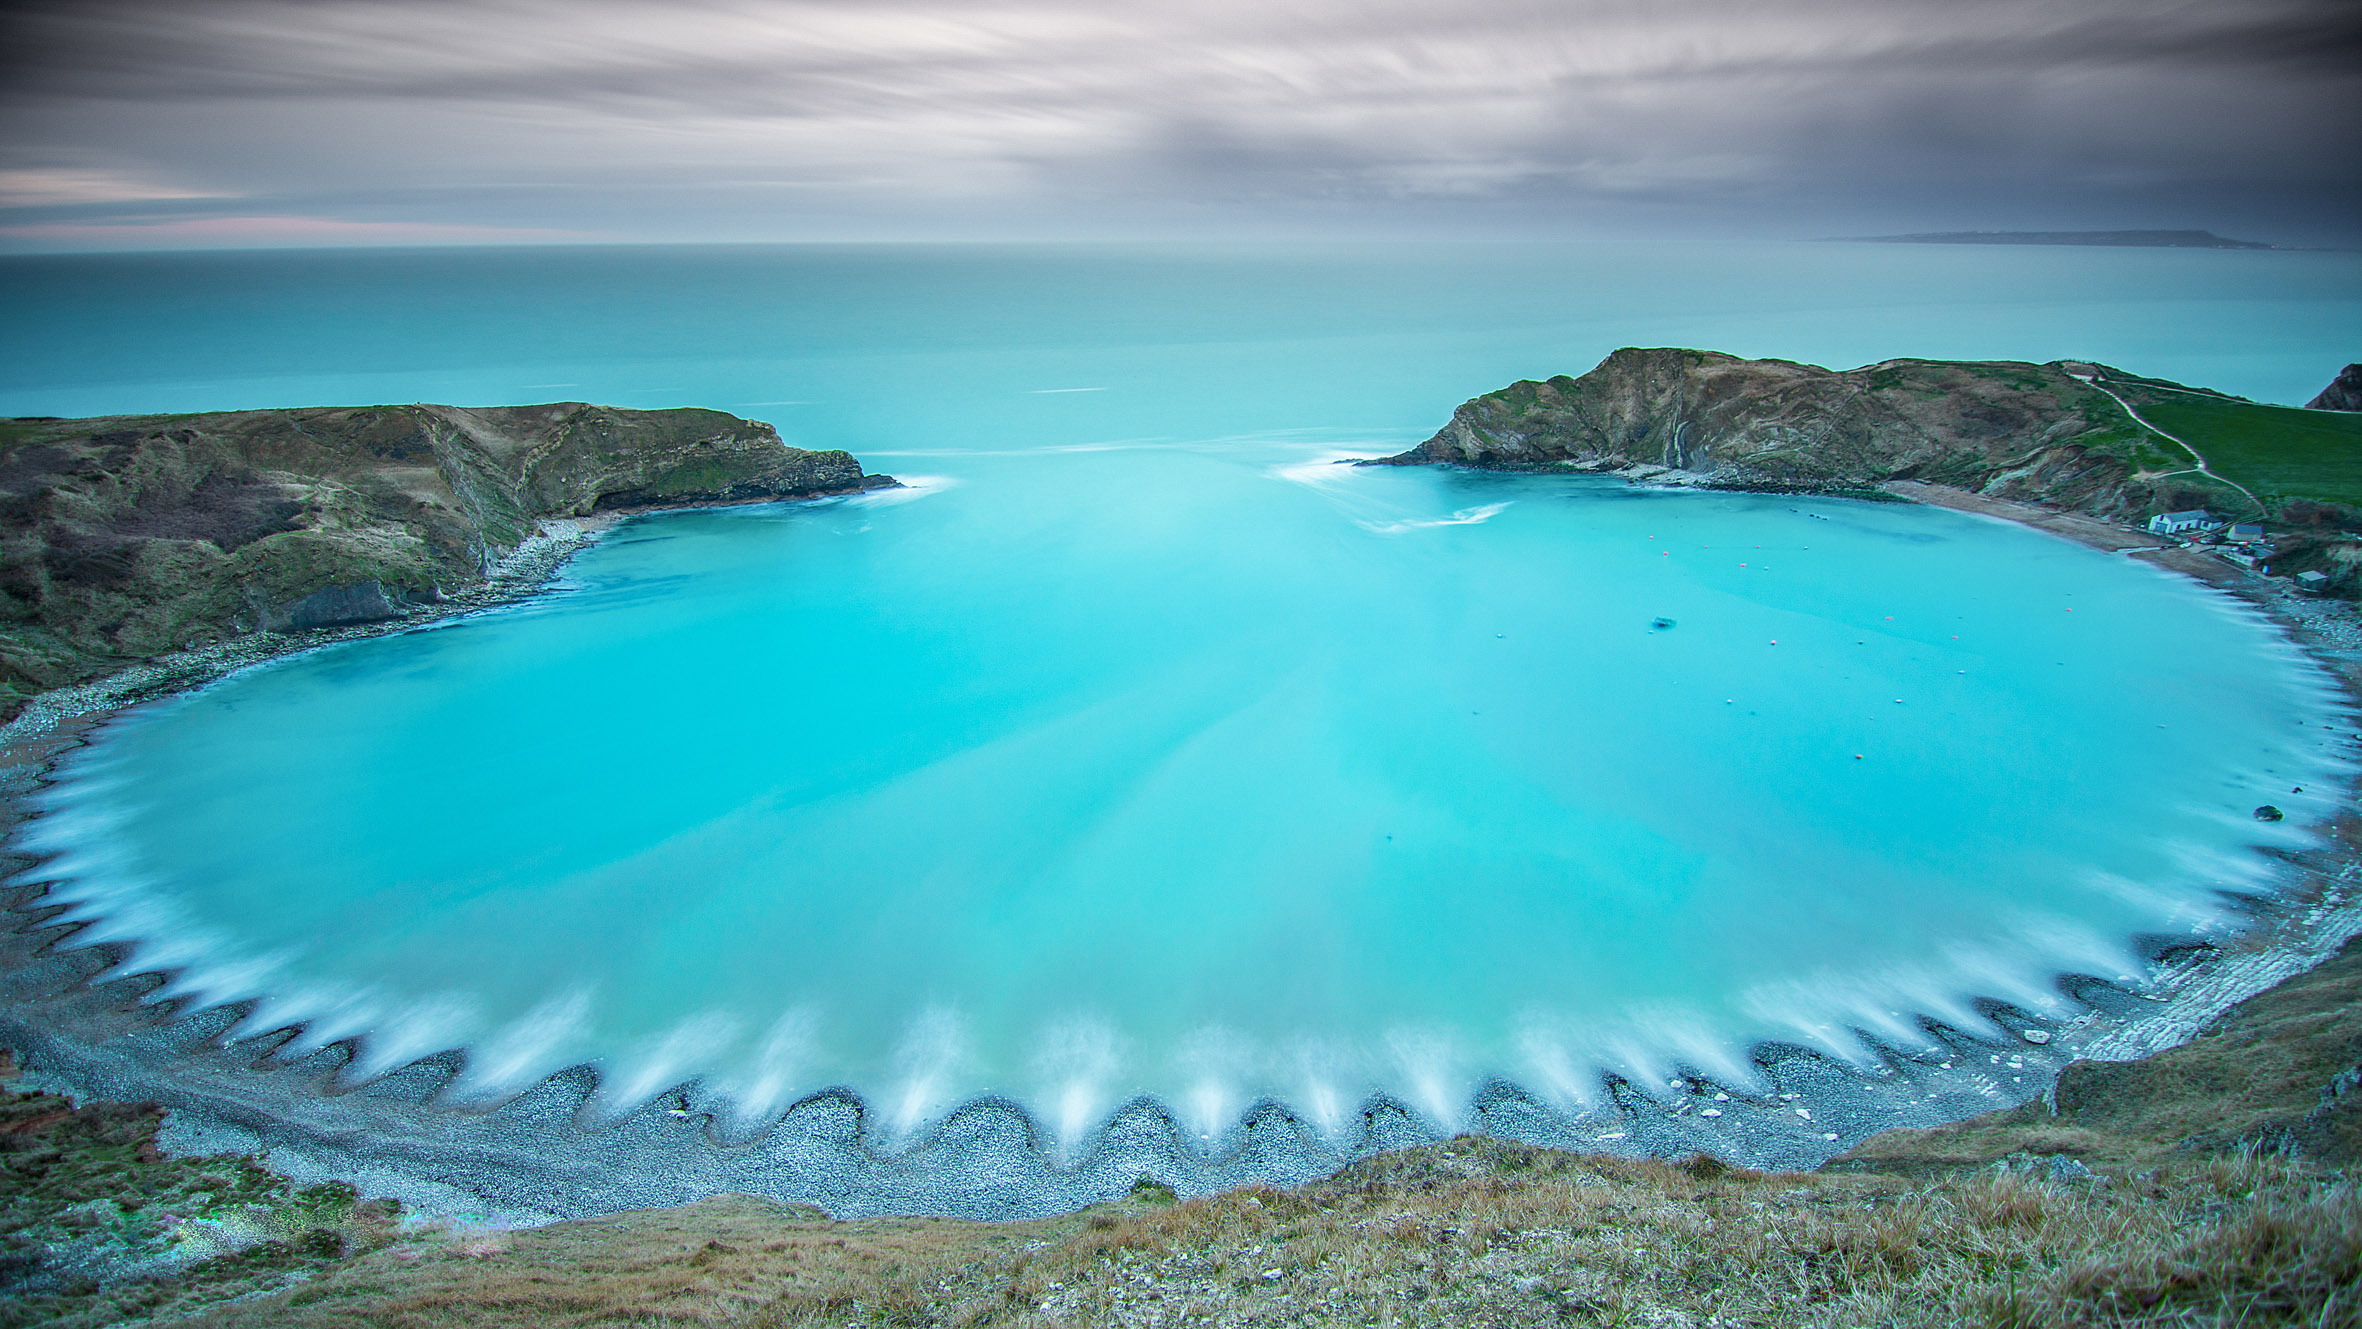 Pete Scott from the Echo Camera Club captured this image of  Lulworth  Cove capturing the incredible shape and colour of the cove..